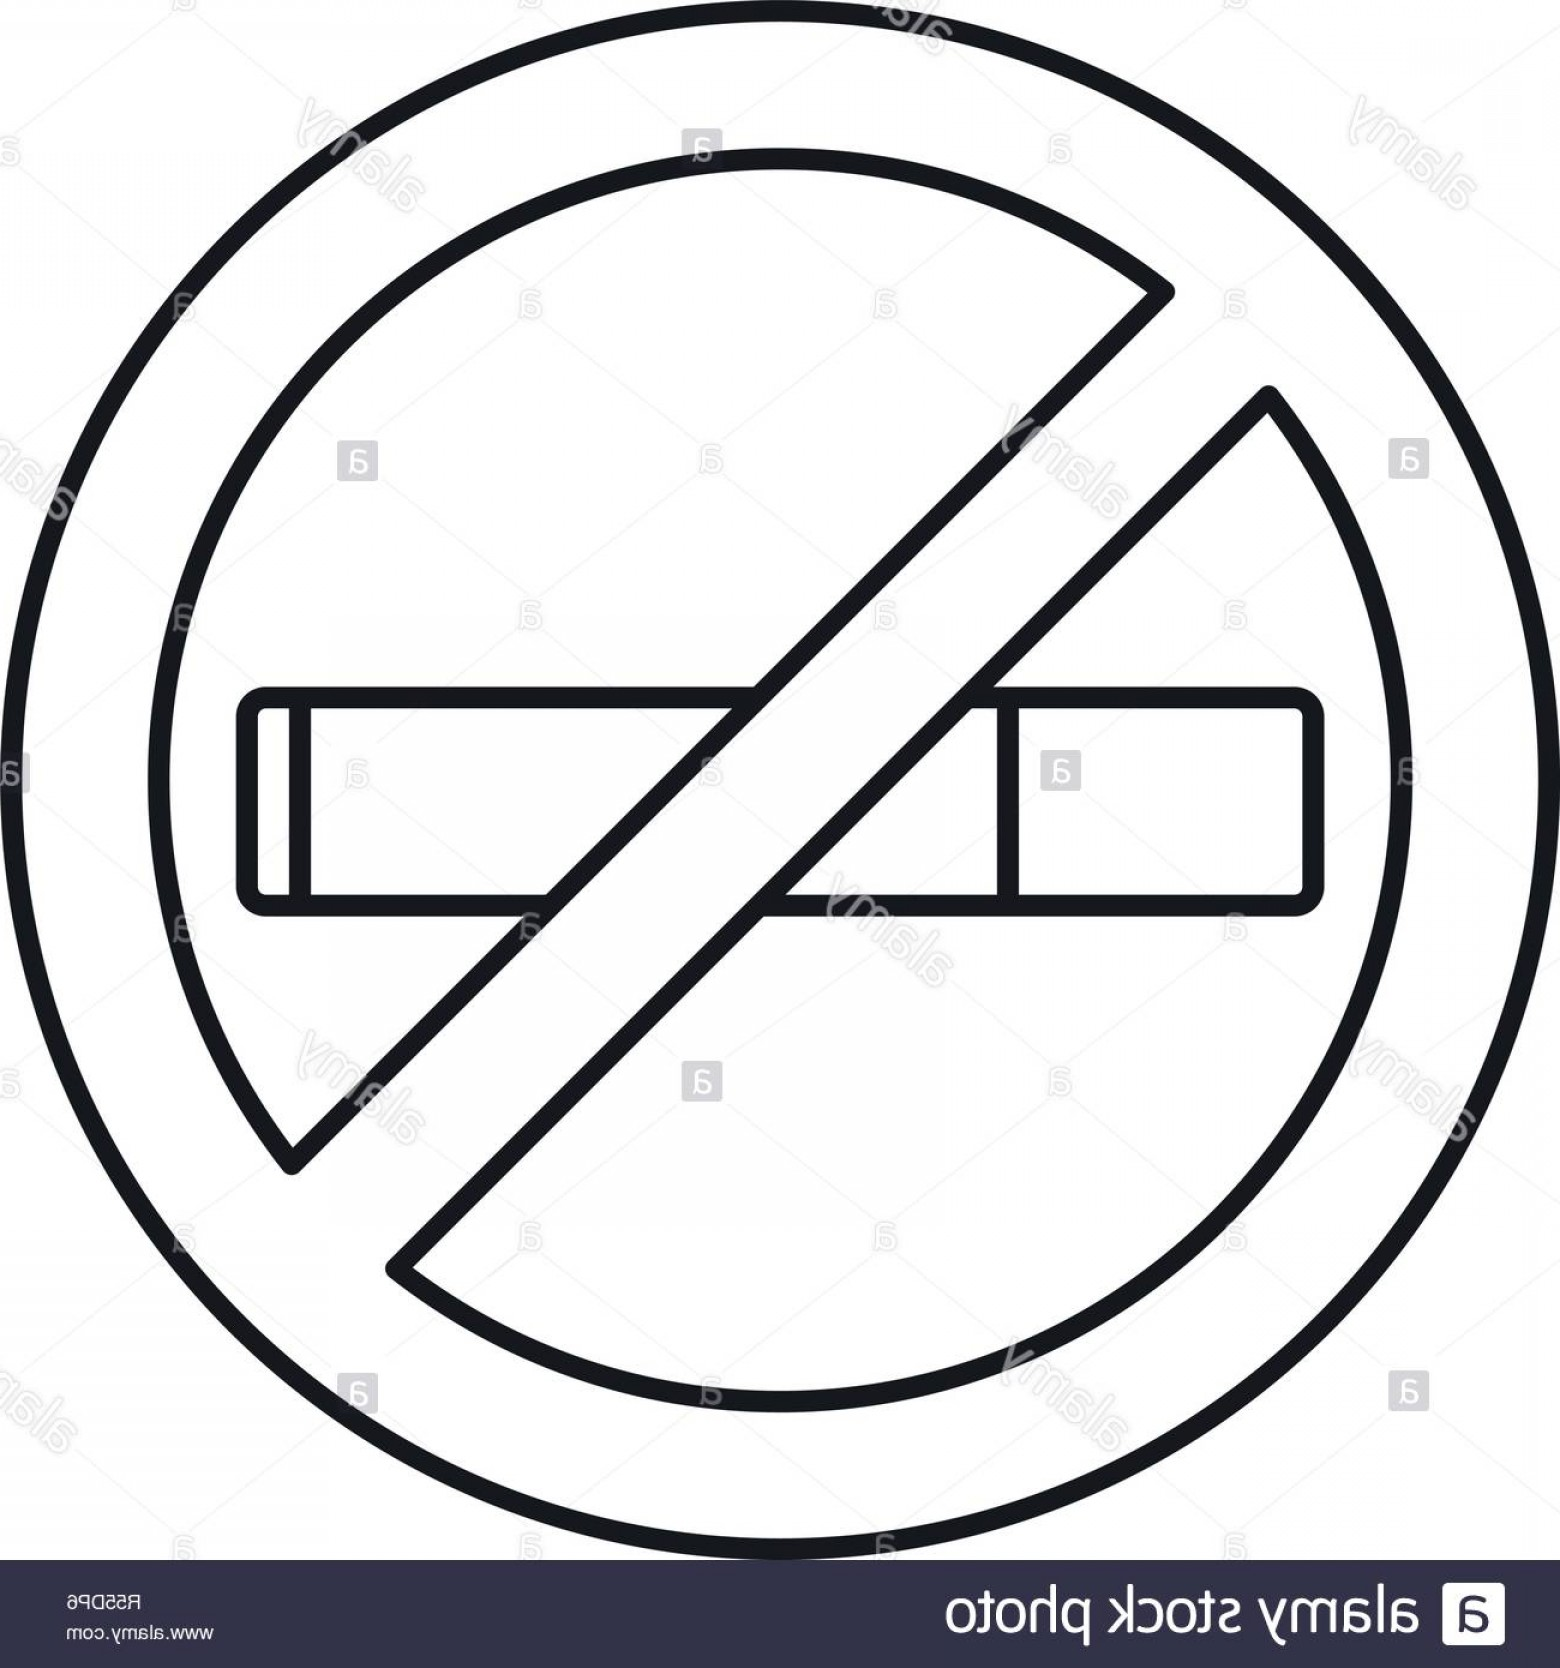 No Smoking Vector Art Black And White: No Smoking Icon Outline Illustration Of No Smoking Vector Icon For Web Design Isolated On White Background Image